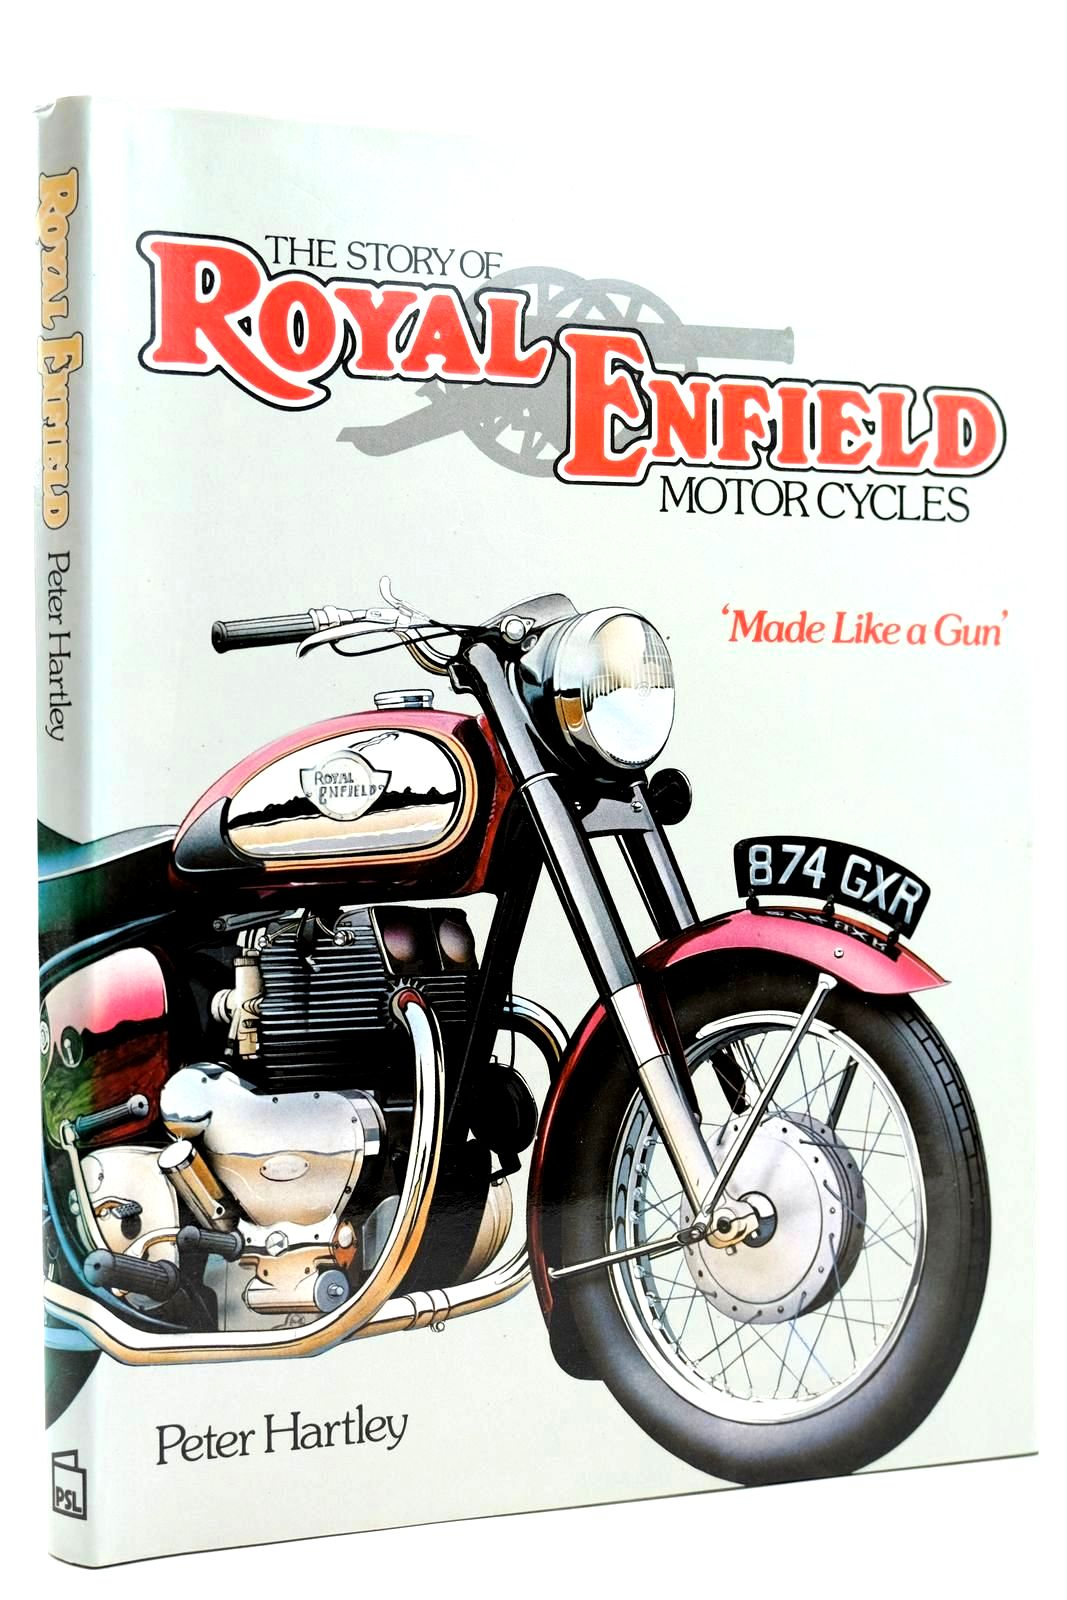 Photo of THE STORY OF ROYAL ENFIELD MOTOR CYCLES written by Hartley, Peter published by Patrick Stephens (STOCK CODE: 2131988)  for sale by Stella & Rose's Books